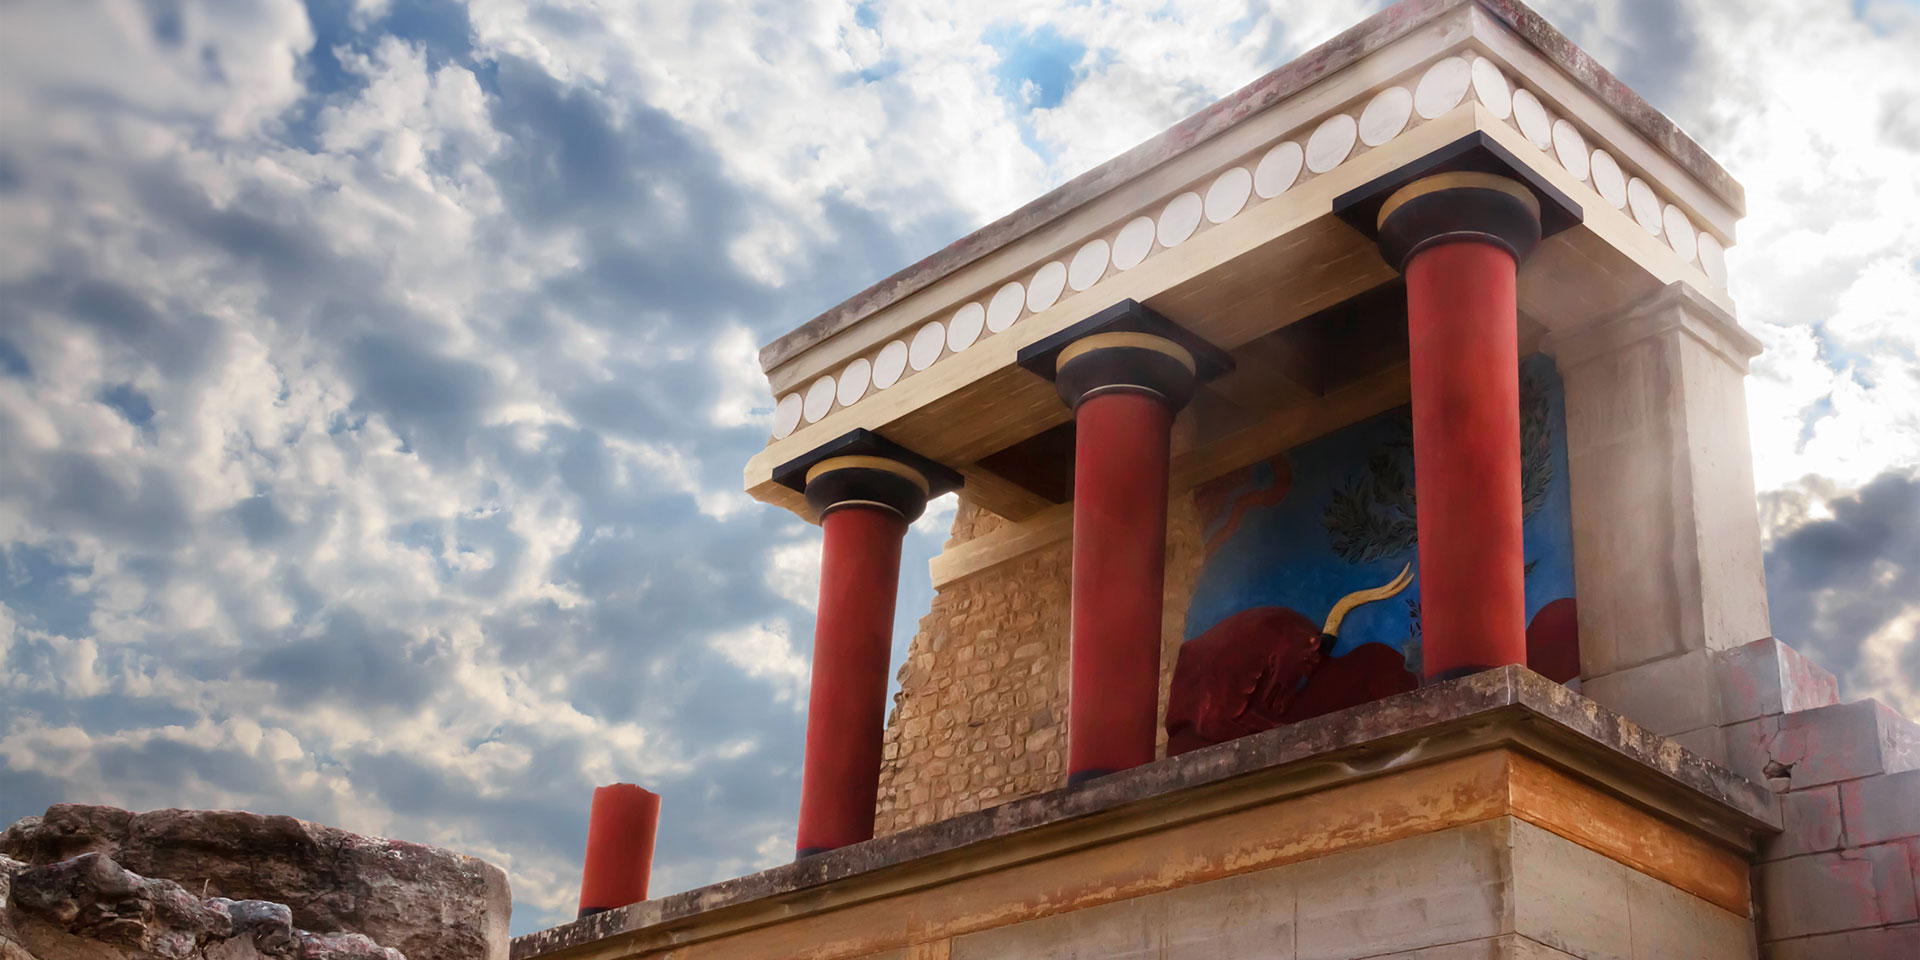 Theseus and the Minotaur| Knossos the main city of the